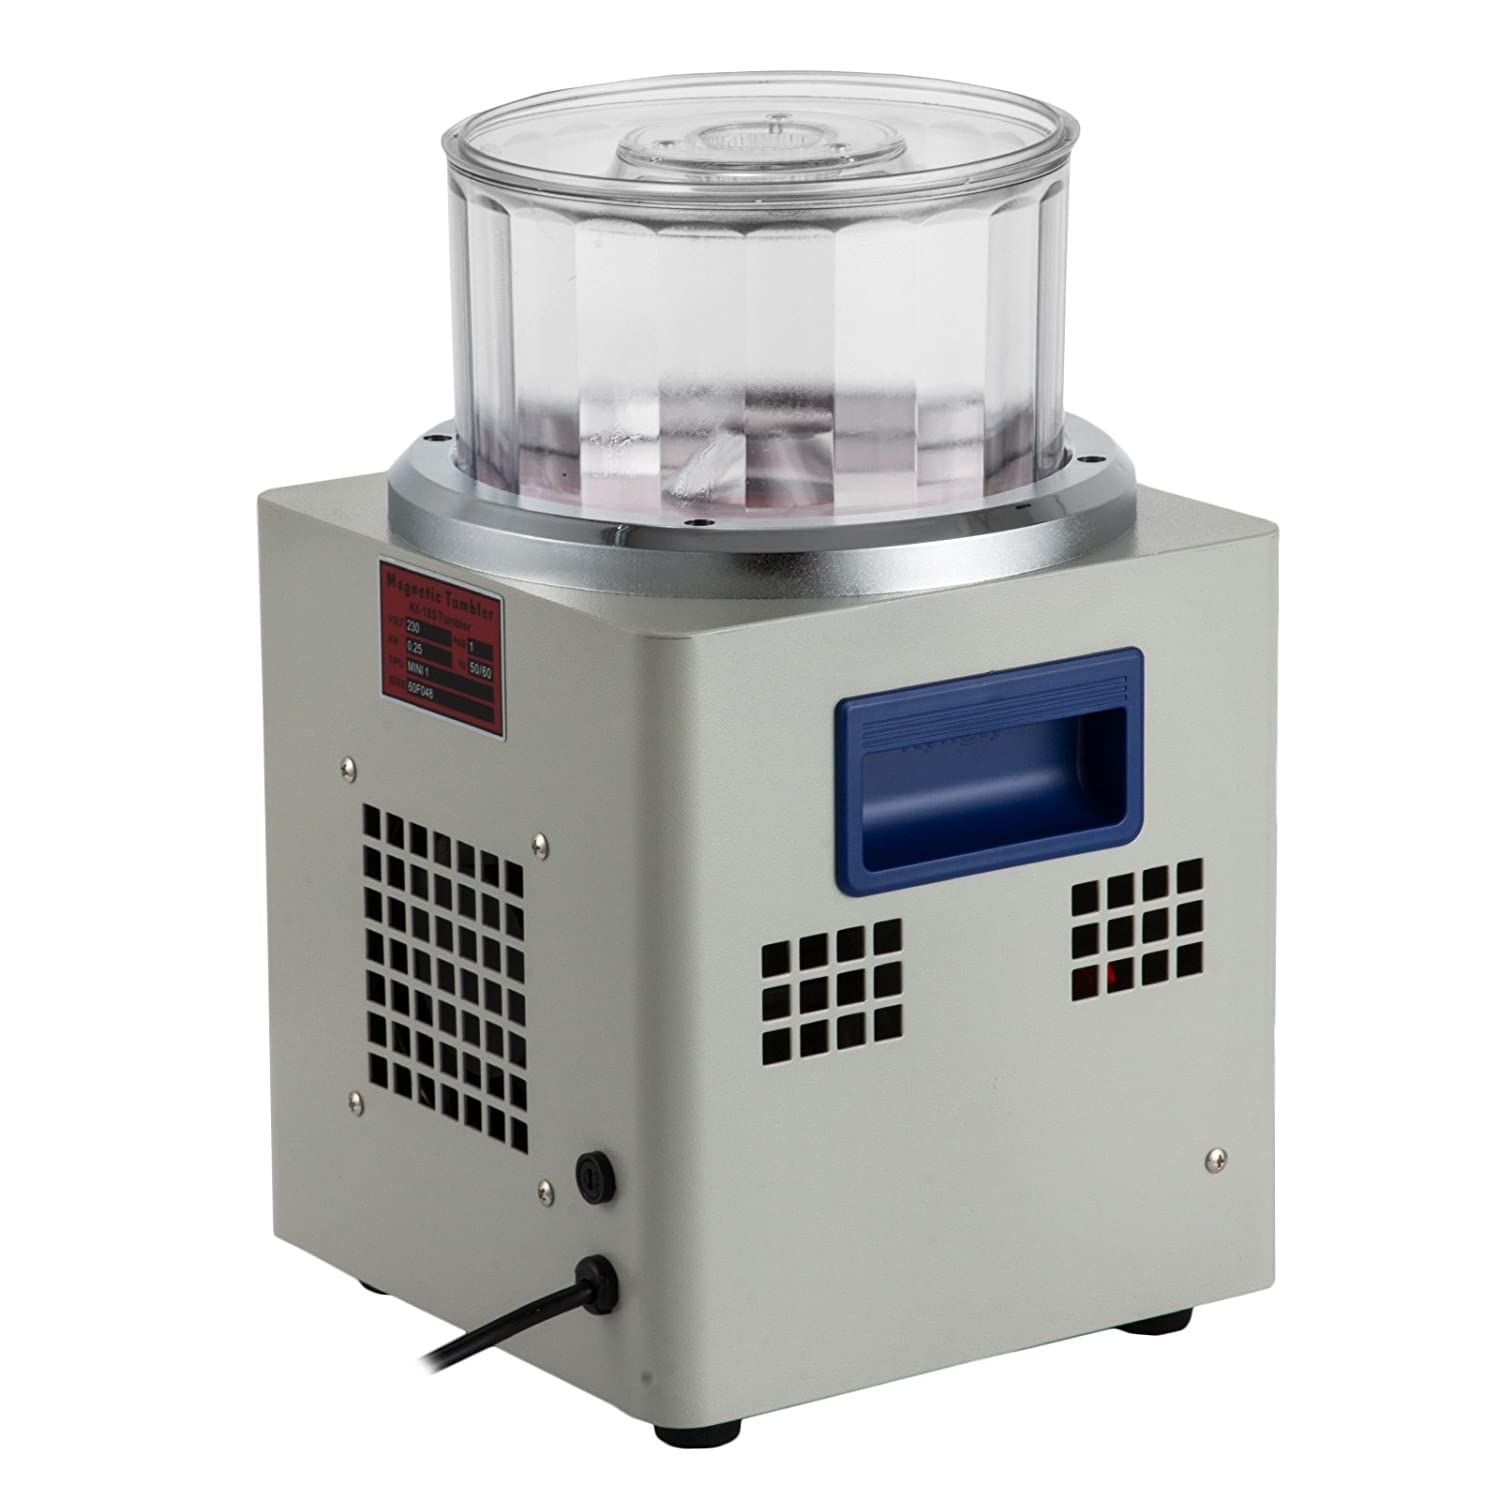 185mm Happybuy Magnetic Tumbler 180mm Jewelry Polisher Tumbler 2000 RPM KT-185 Jewelry Polisher Finisher with Adjustable Speed for Jewelry